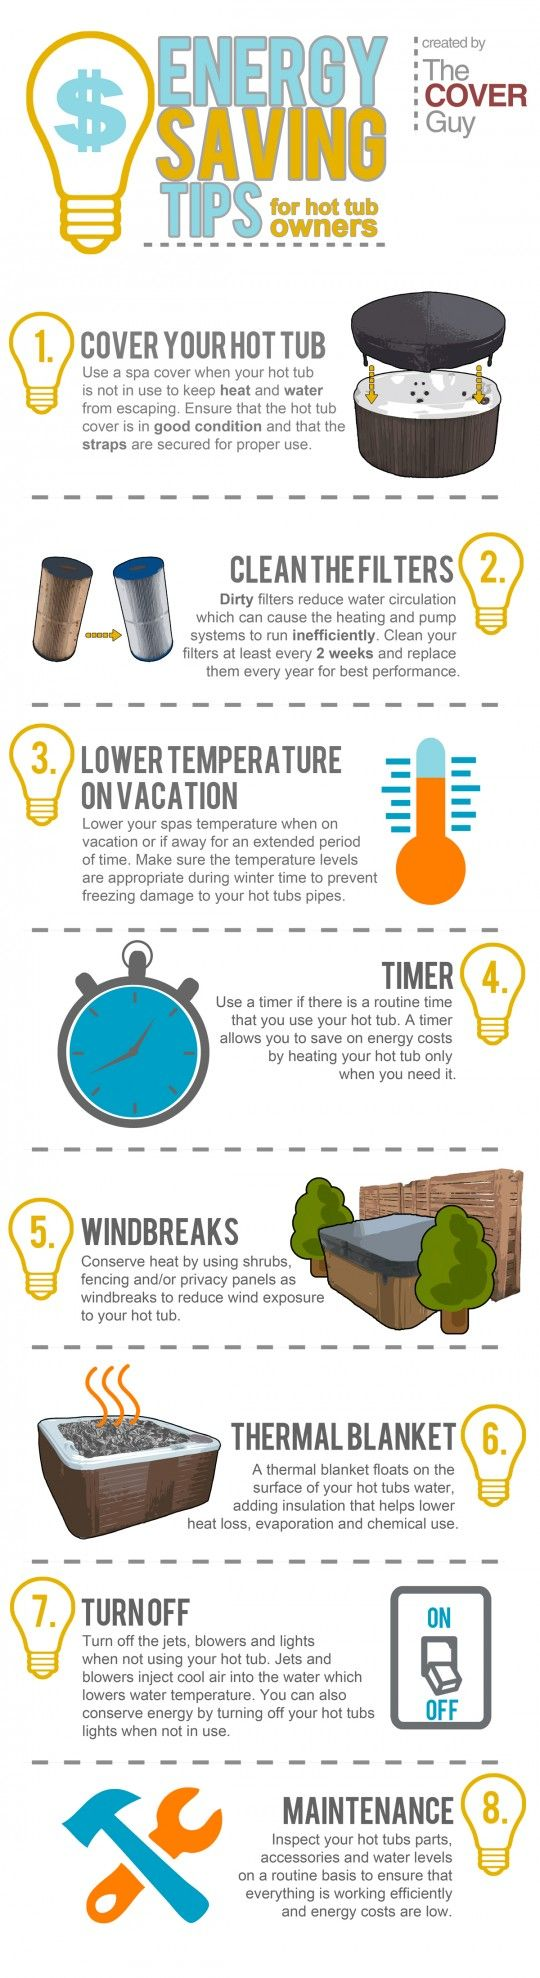 Energy Saving Tips for Hot Tub Owners | Backyard Blast by TheCoverGuy.com